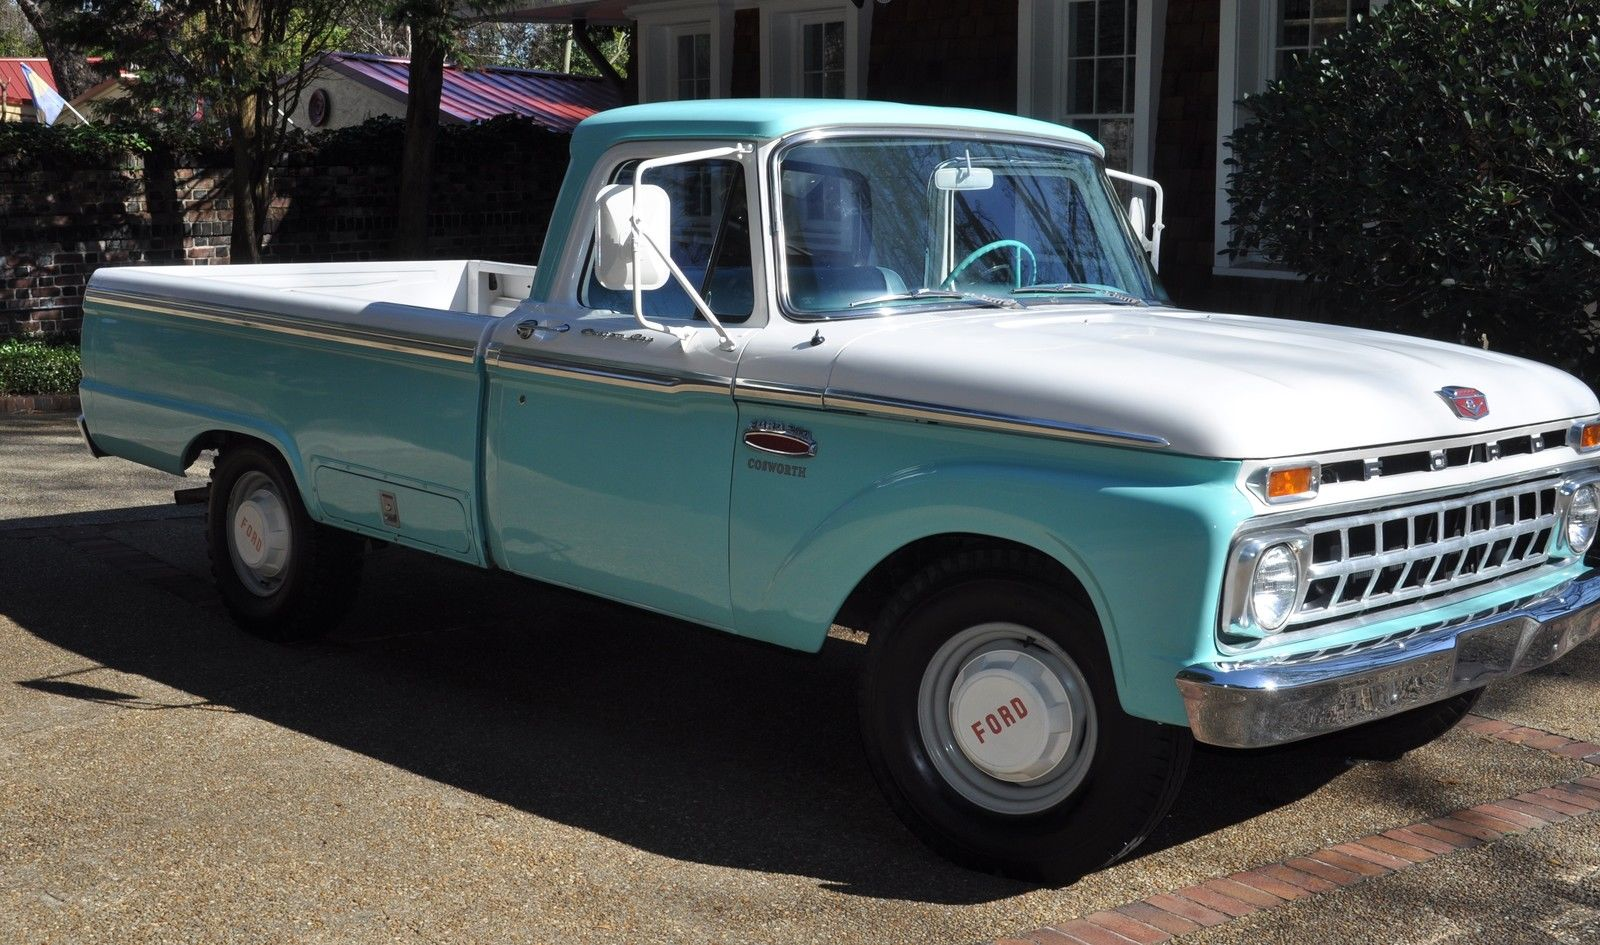 1965 Ford F-250 Twin-I-Beam Custom Cab Camper Special-IN RESTORED CONDITION